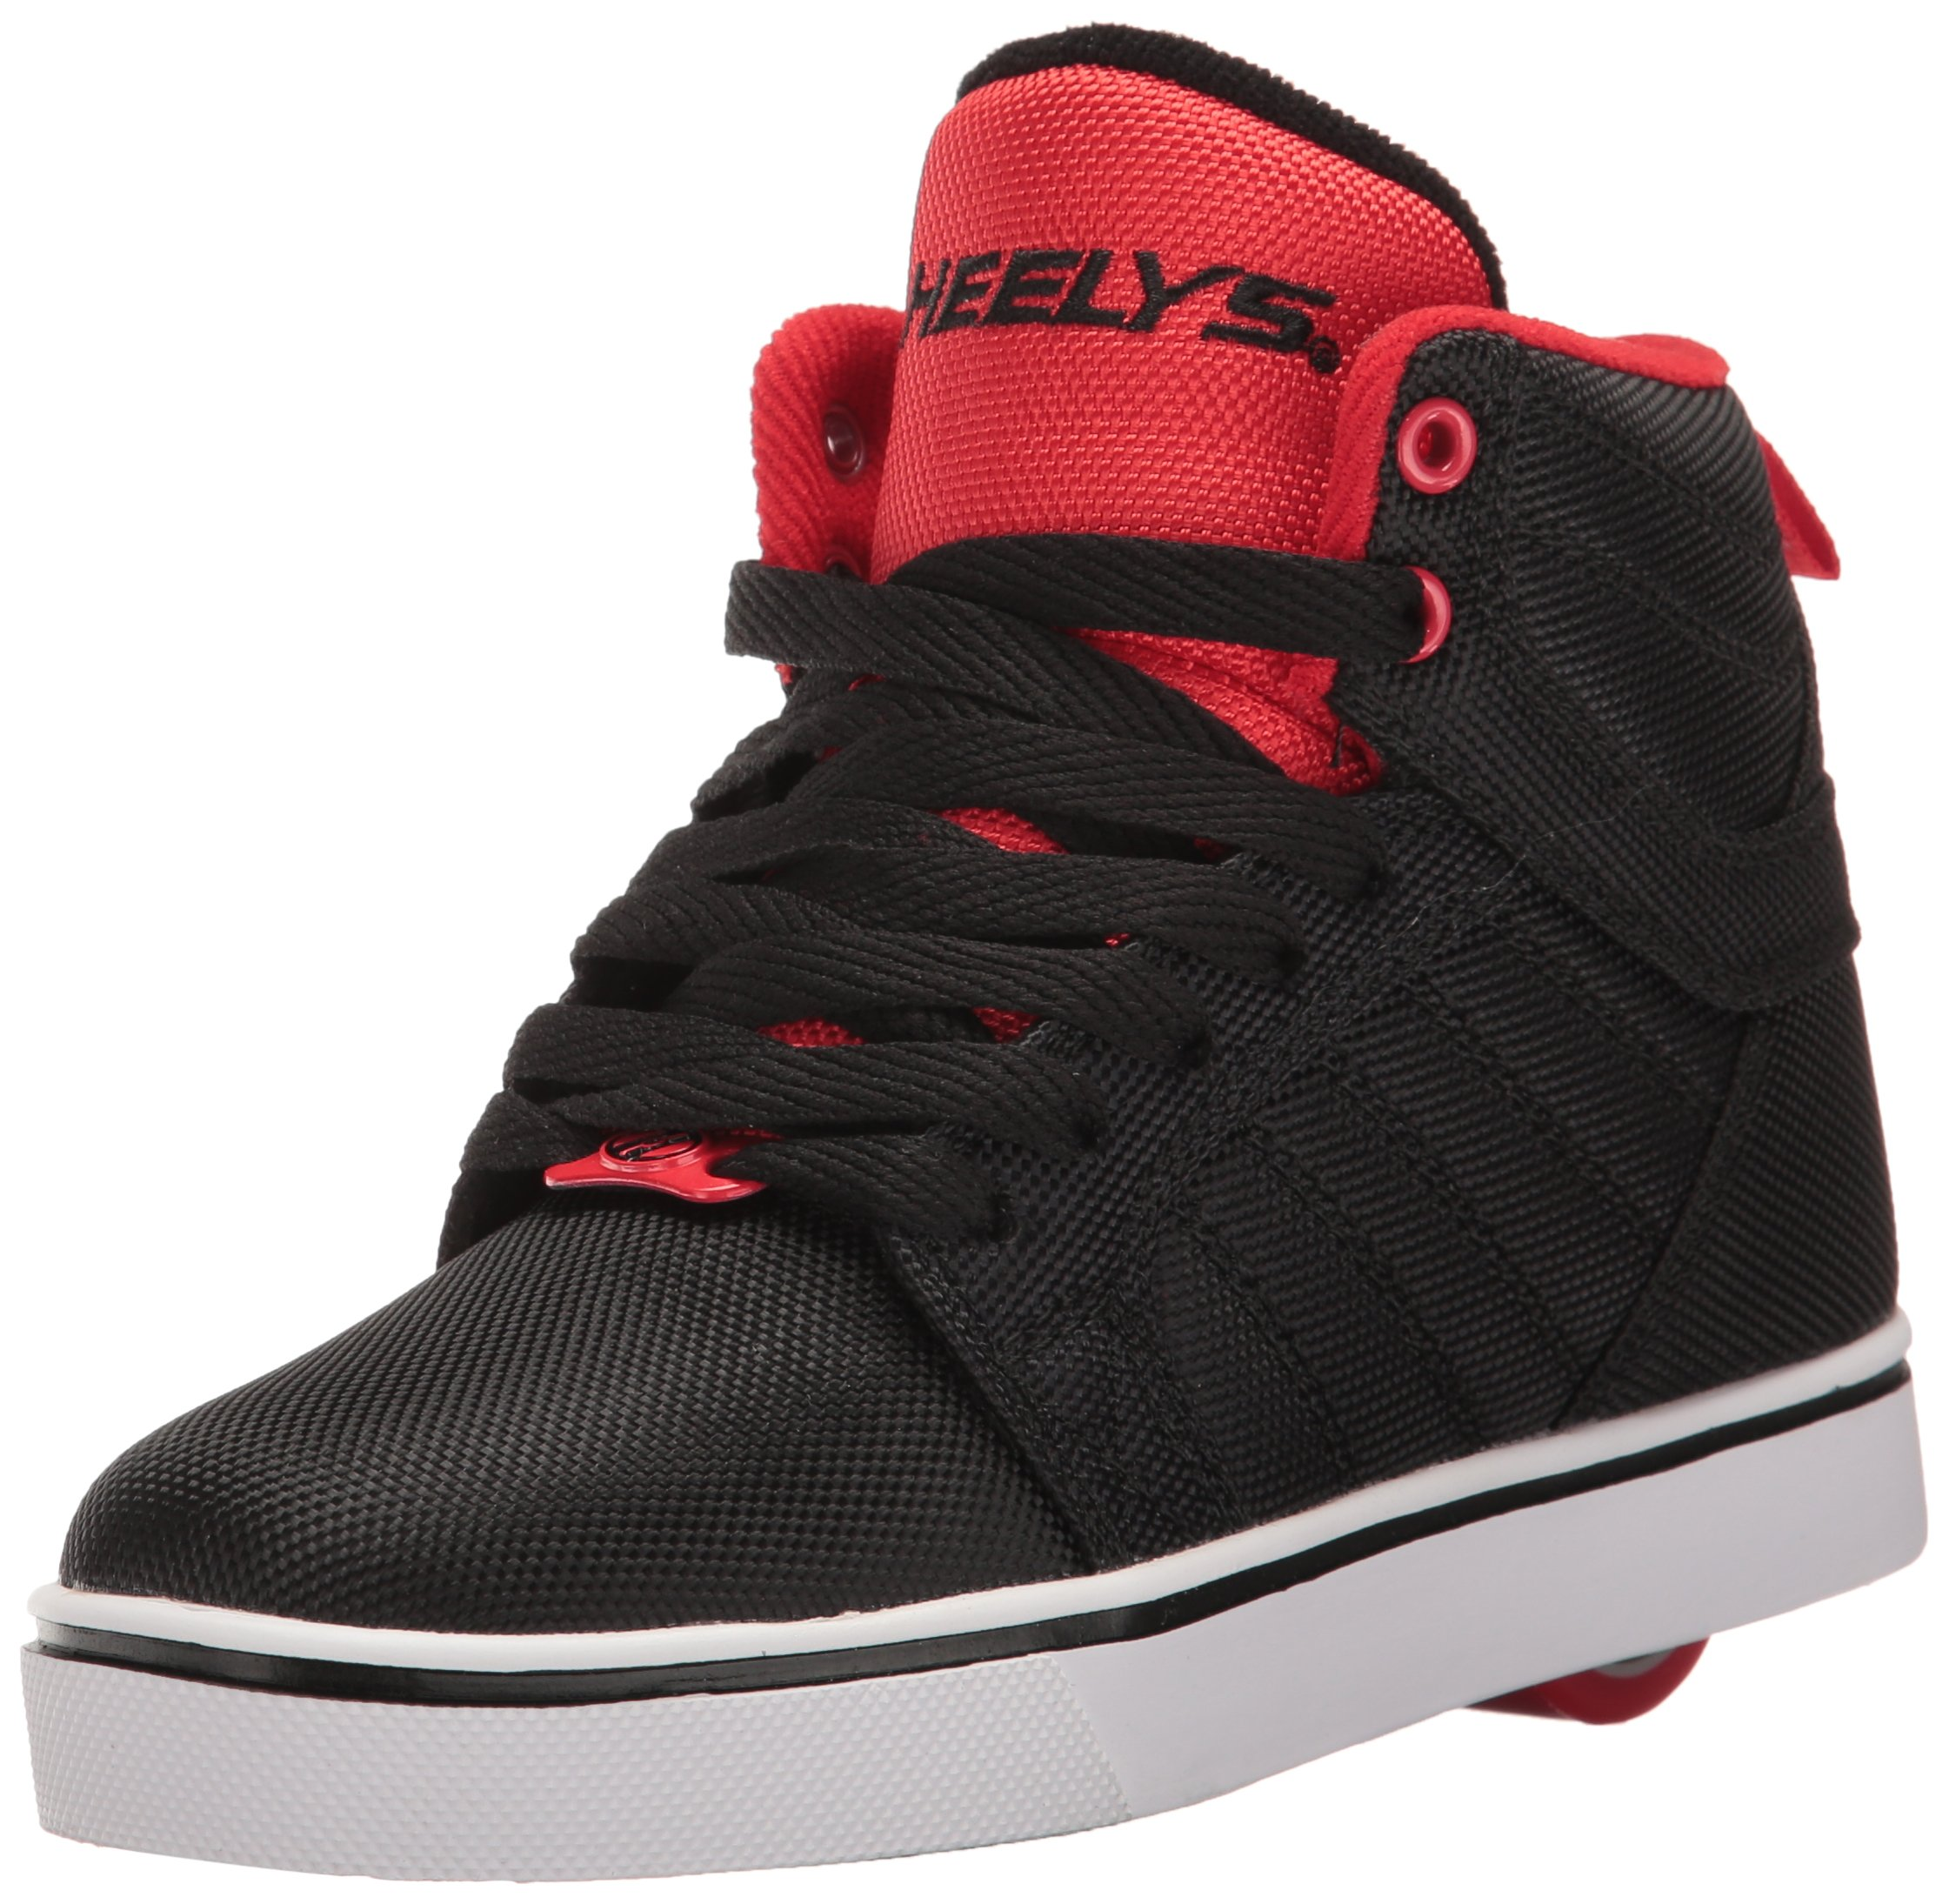 Heelys Boys' Uptown Sneaker, Black/Red Ballistic, 4 M US Big Kid by Heelys